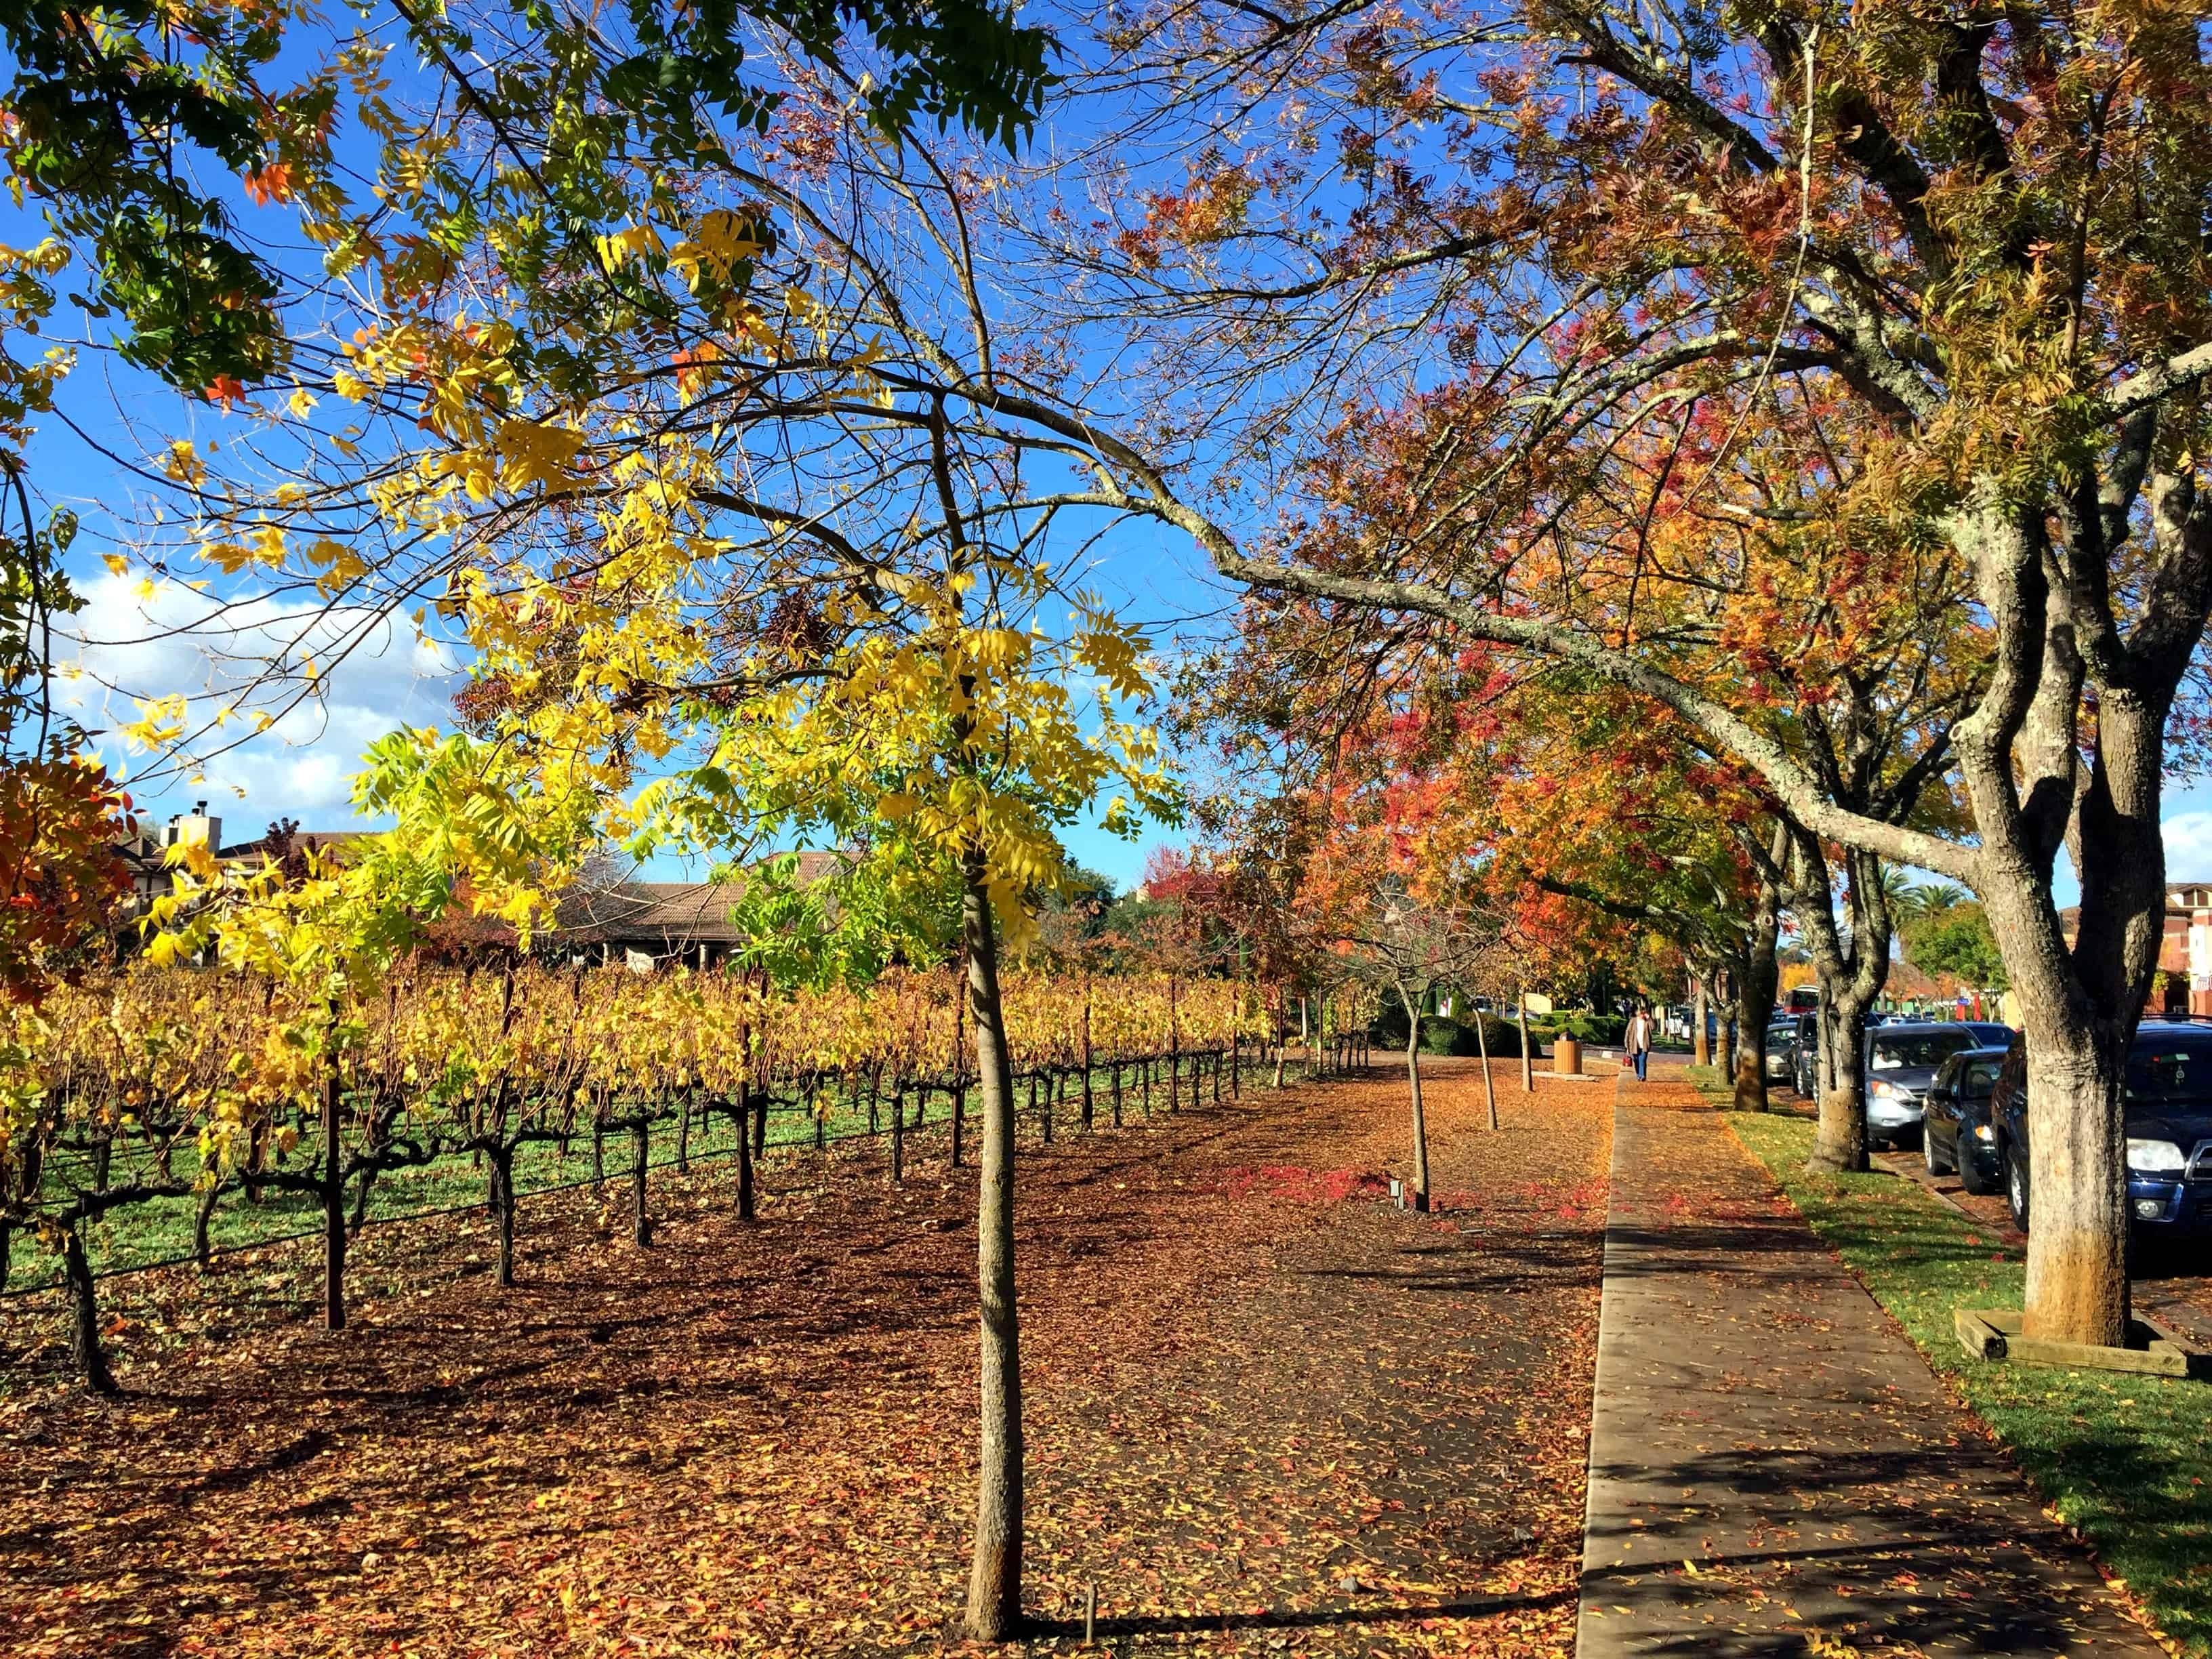 Vineyards on Washington Street